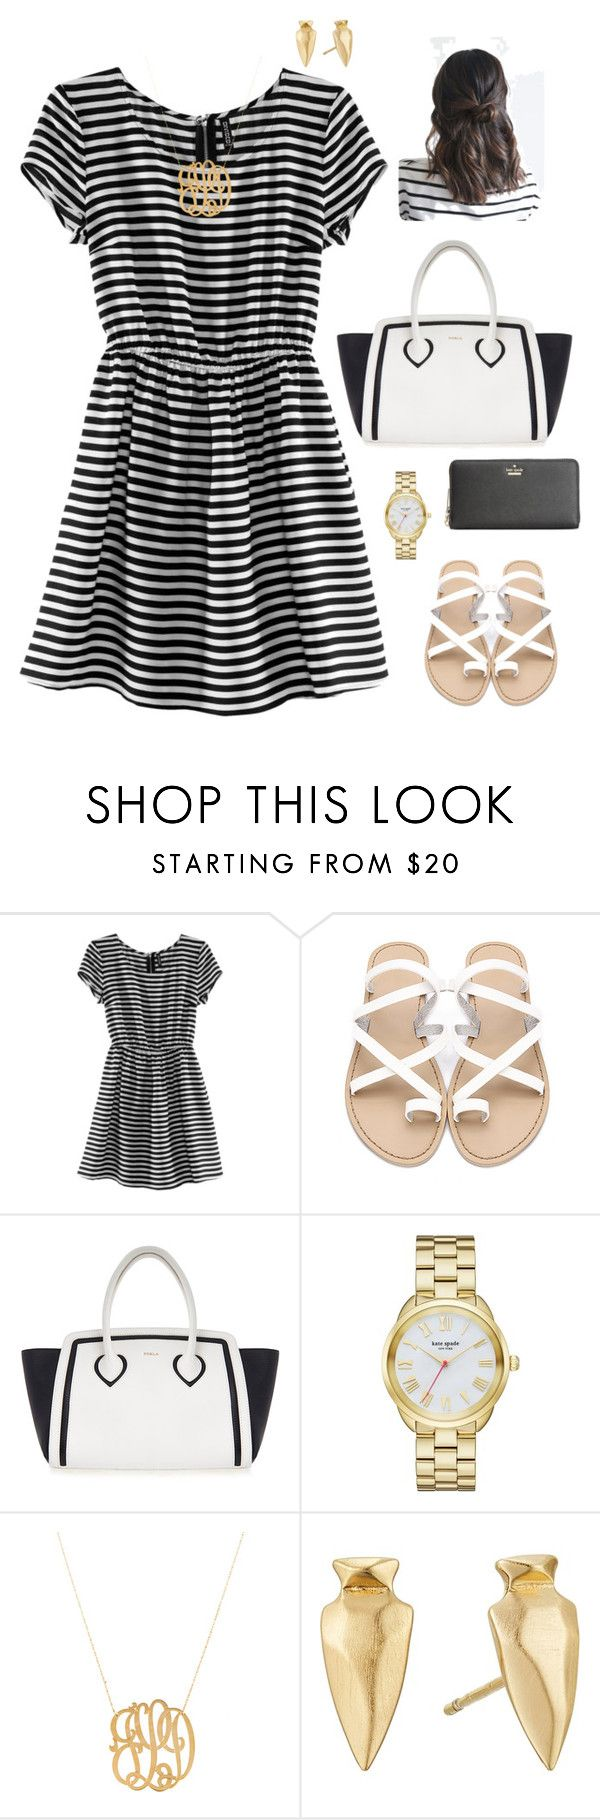 """""""Need help! RTD!!!"""" by oliviacat1215 ❤ liked on Polyvore featuring H&M, Furla, Kate Spade, Jennifer Zeuner, Kendra Scott and vintage"""